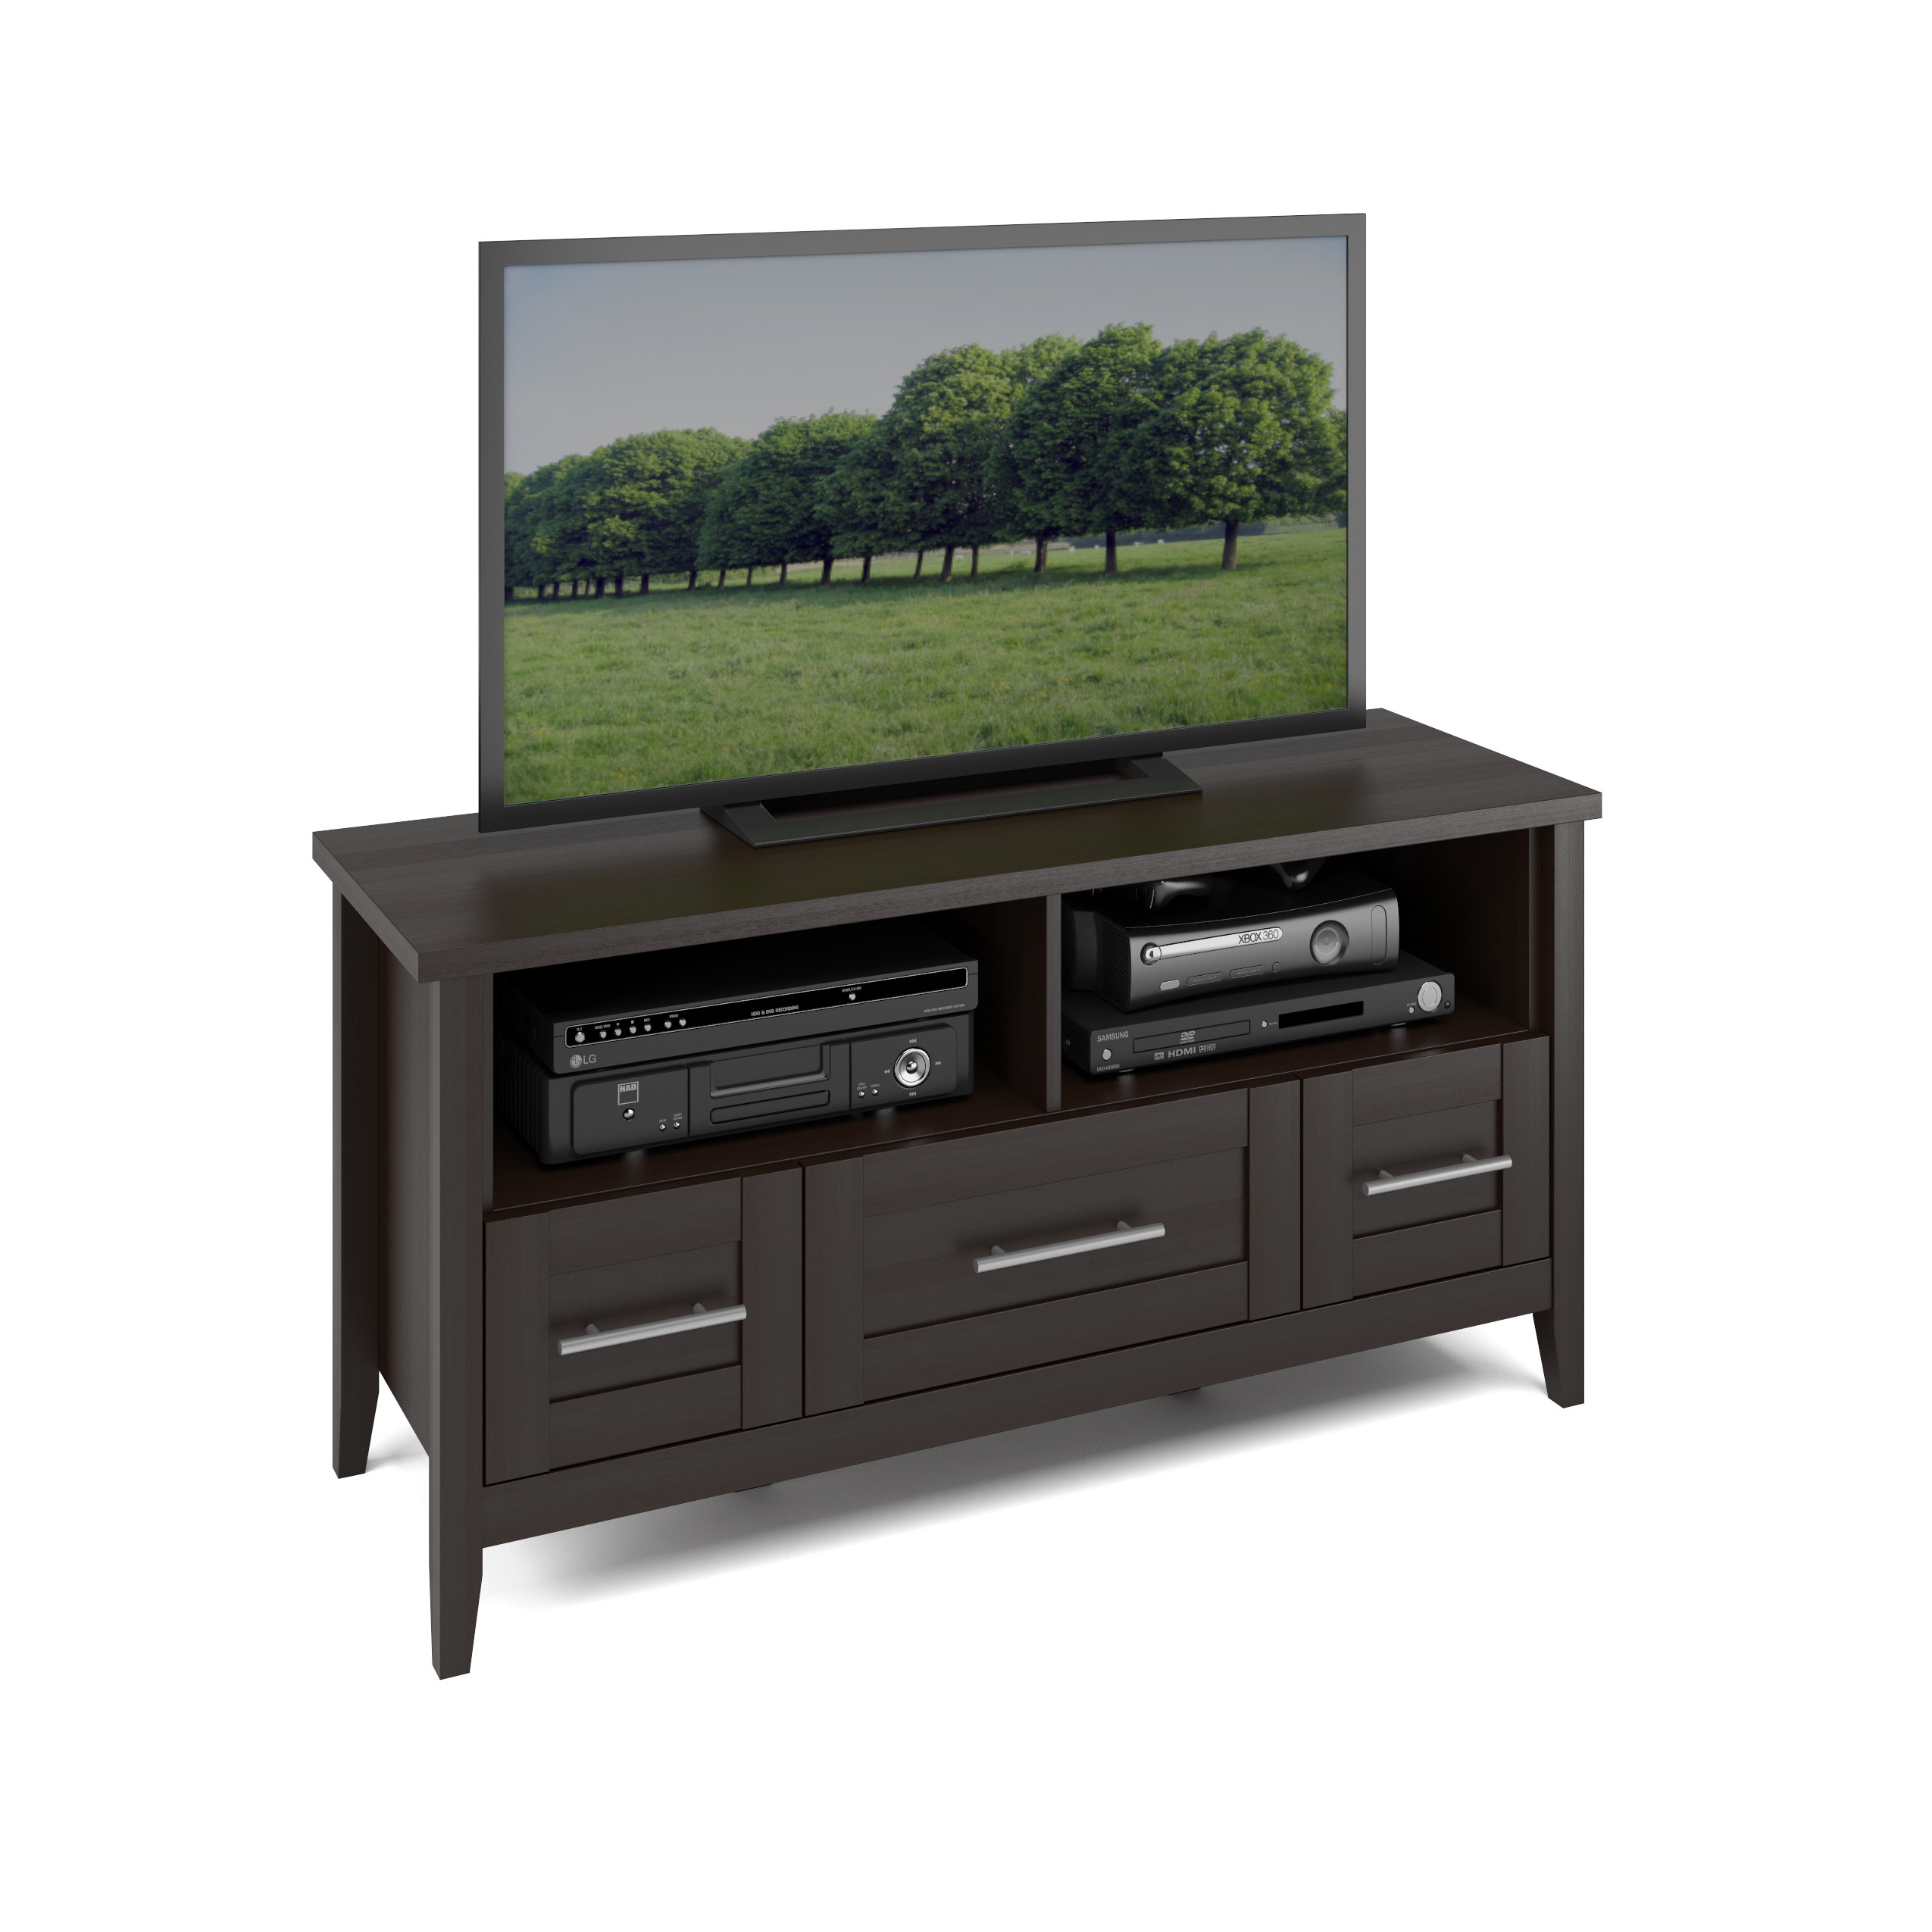 CorLiving Jackson TV Bench in Espresso Finish, for TVs up to 50